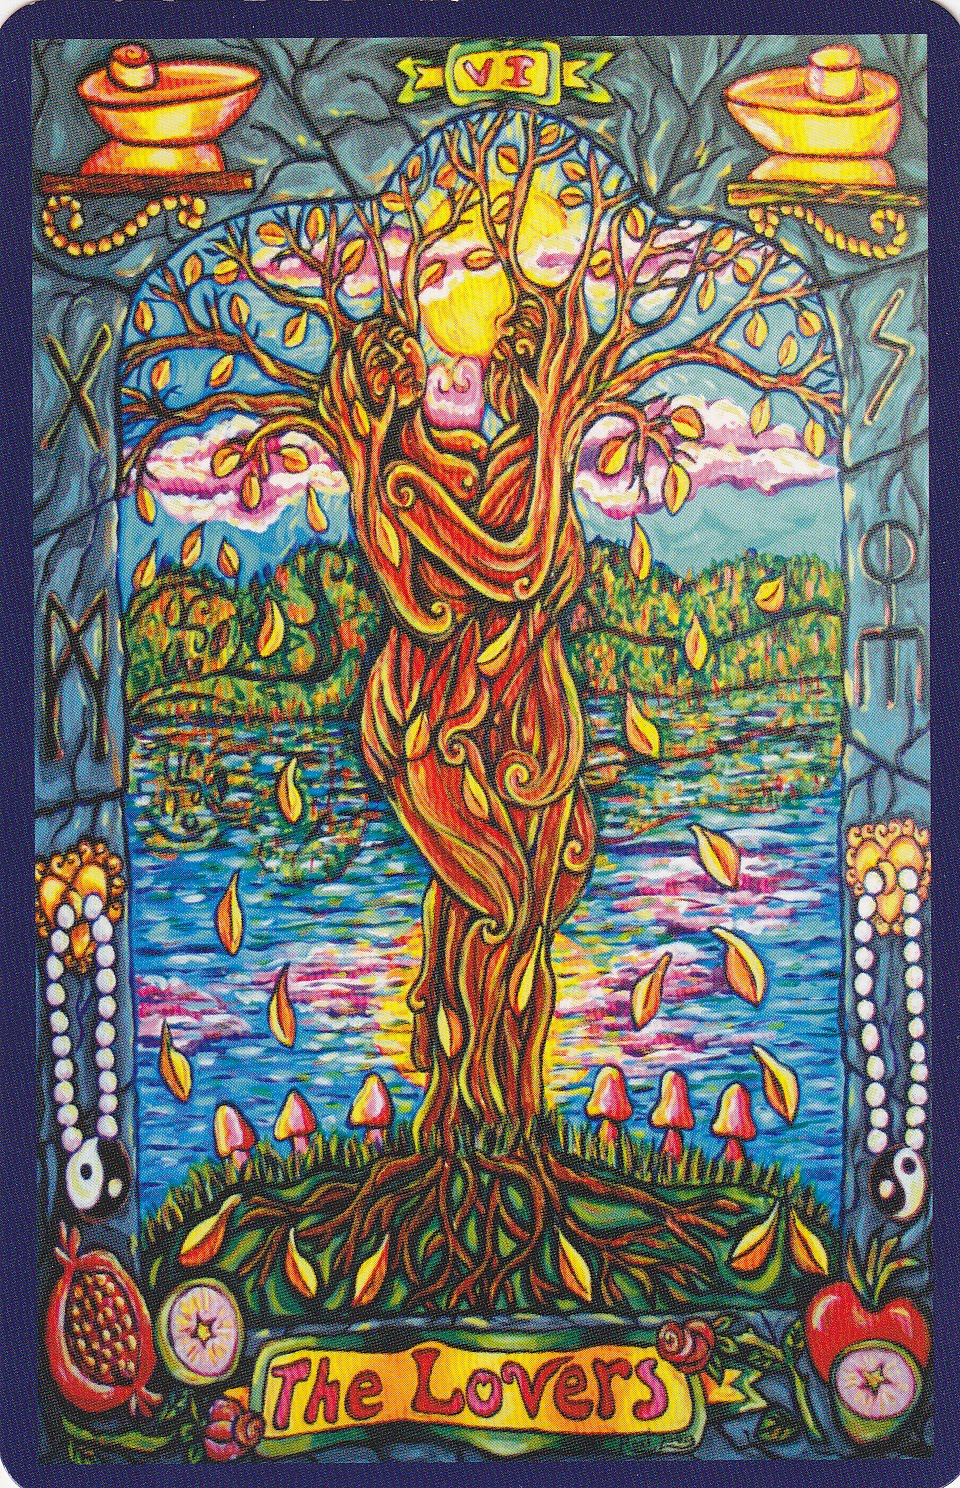 Rowan Tarot December 2012: Rowan Tarot: One Plus One Is One?